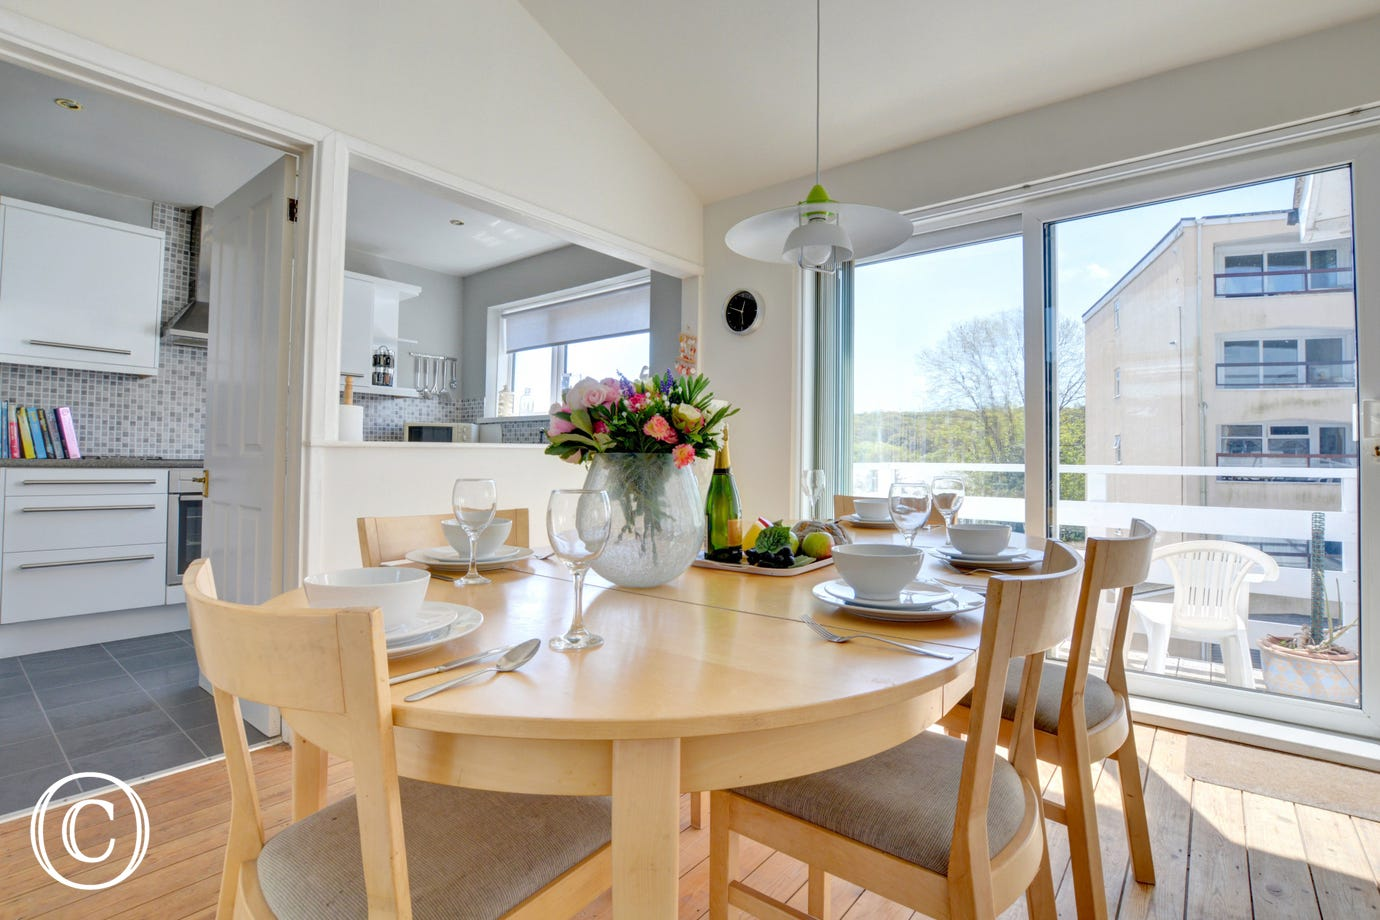 This super self catering holiday property has a light & bright dining area with hatch into kitchen.